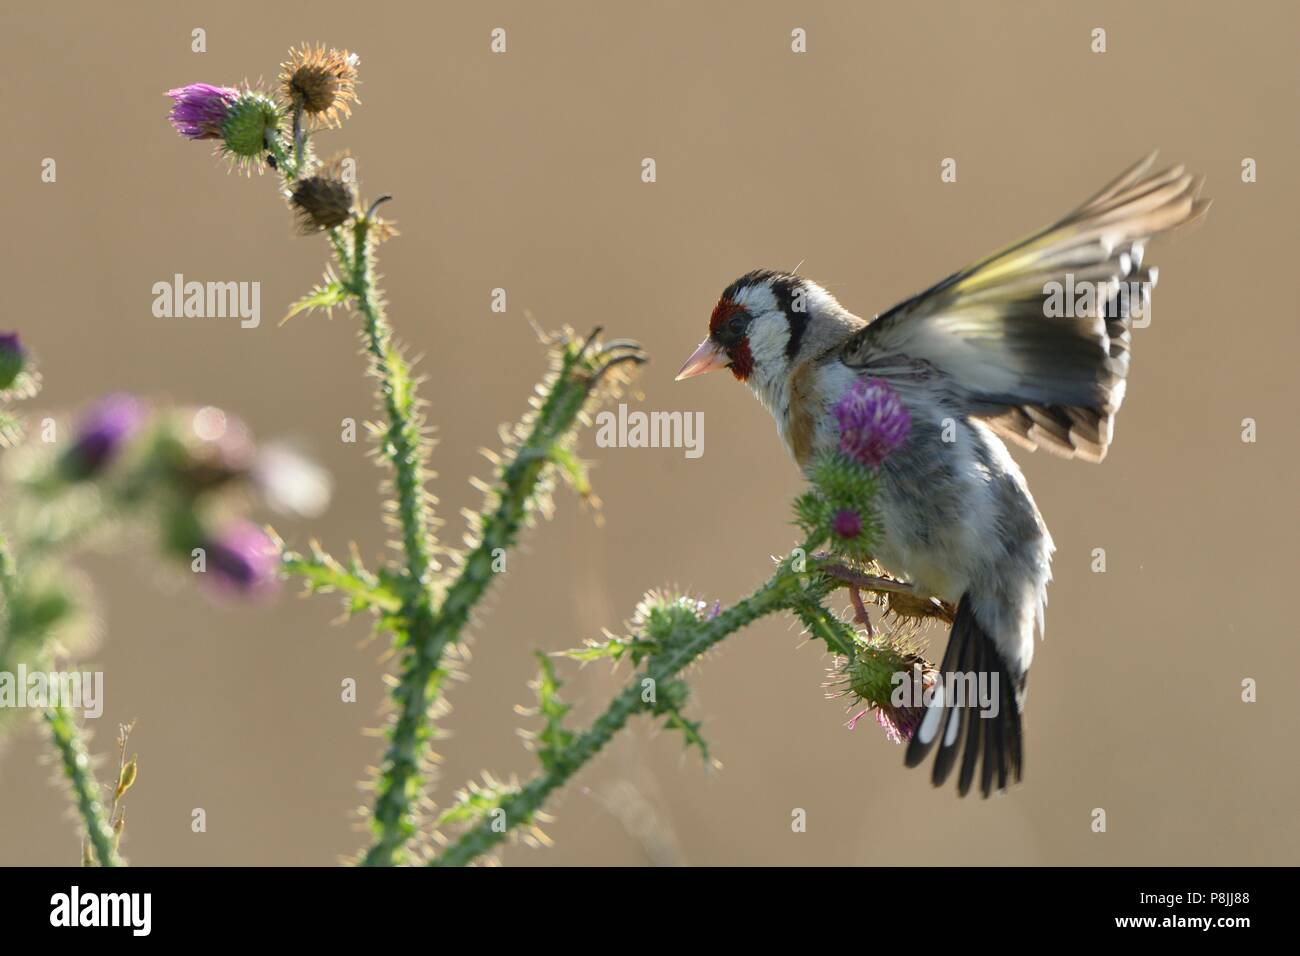 European Goldfinch foraging on seeds of Thistle - Stock Image